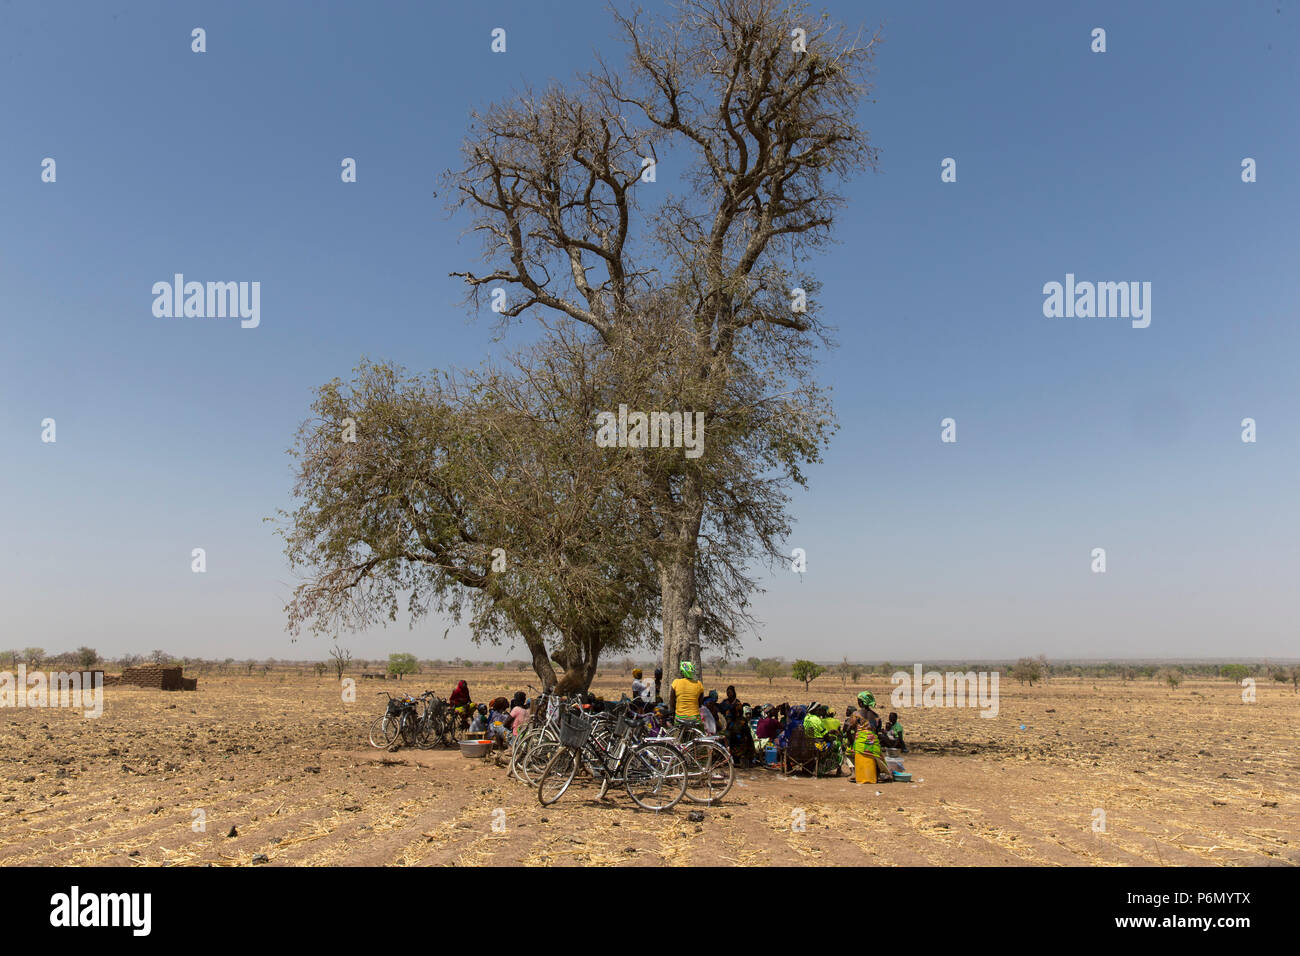 Members of a women's microfinance cooperative reimbursing their loans under a tree in Northern Togo. - Stock Image